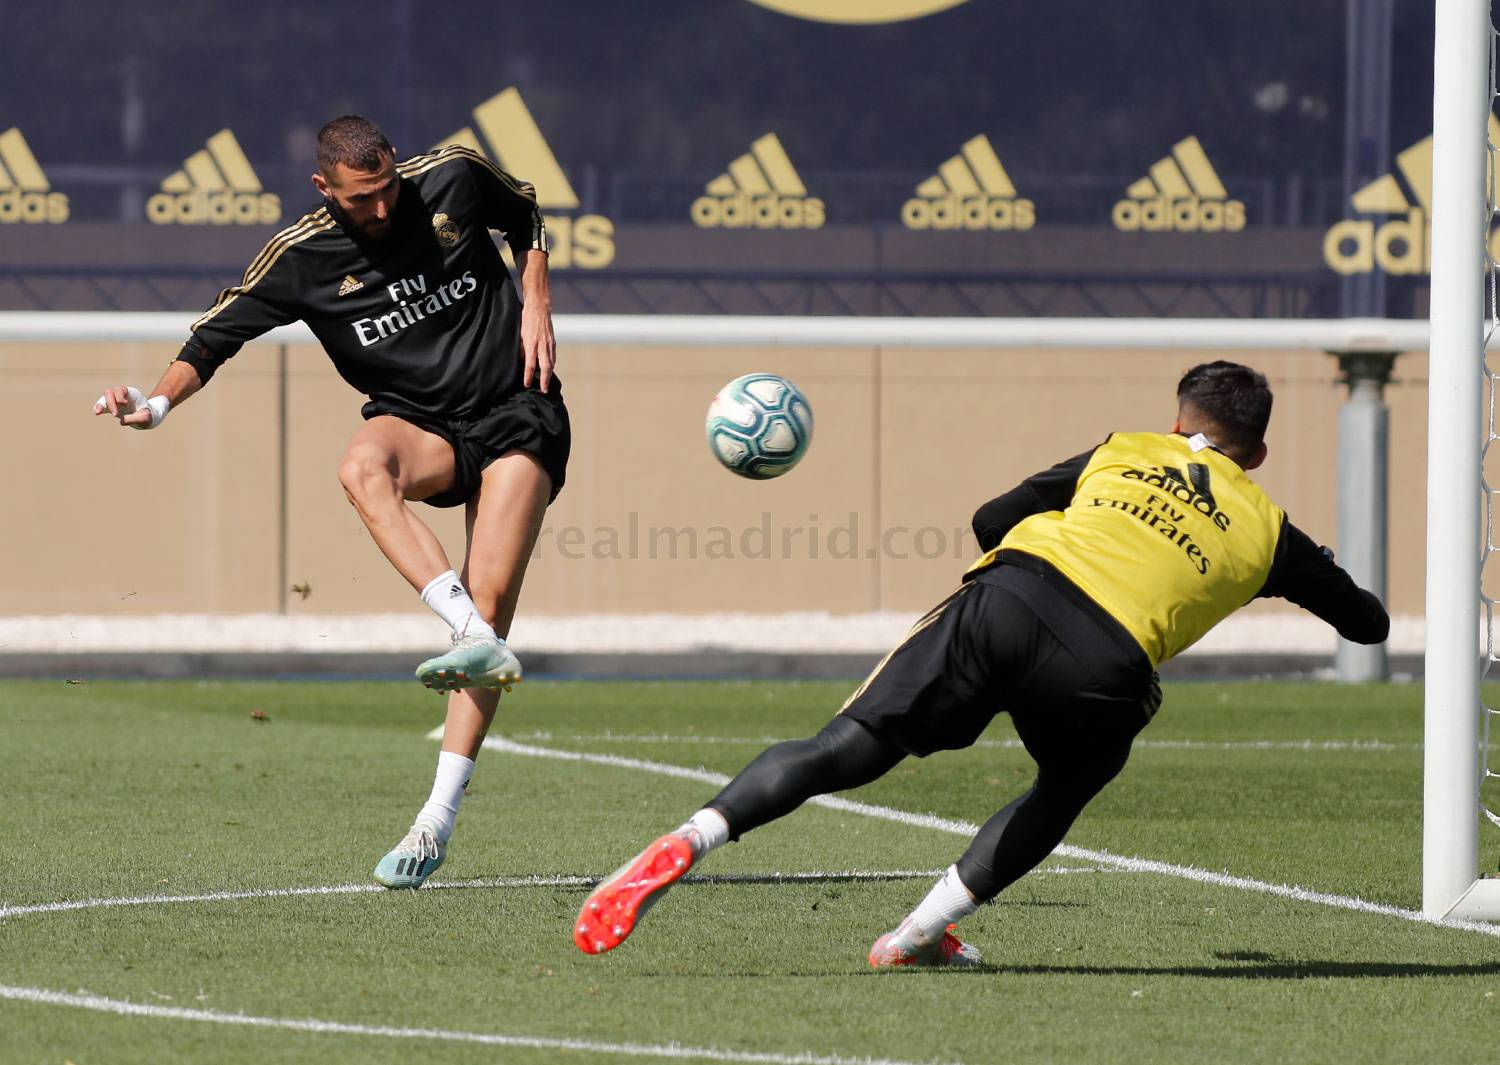 Real Madrid - Entrenamiento del Real Madrid  - 10-09-2019